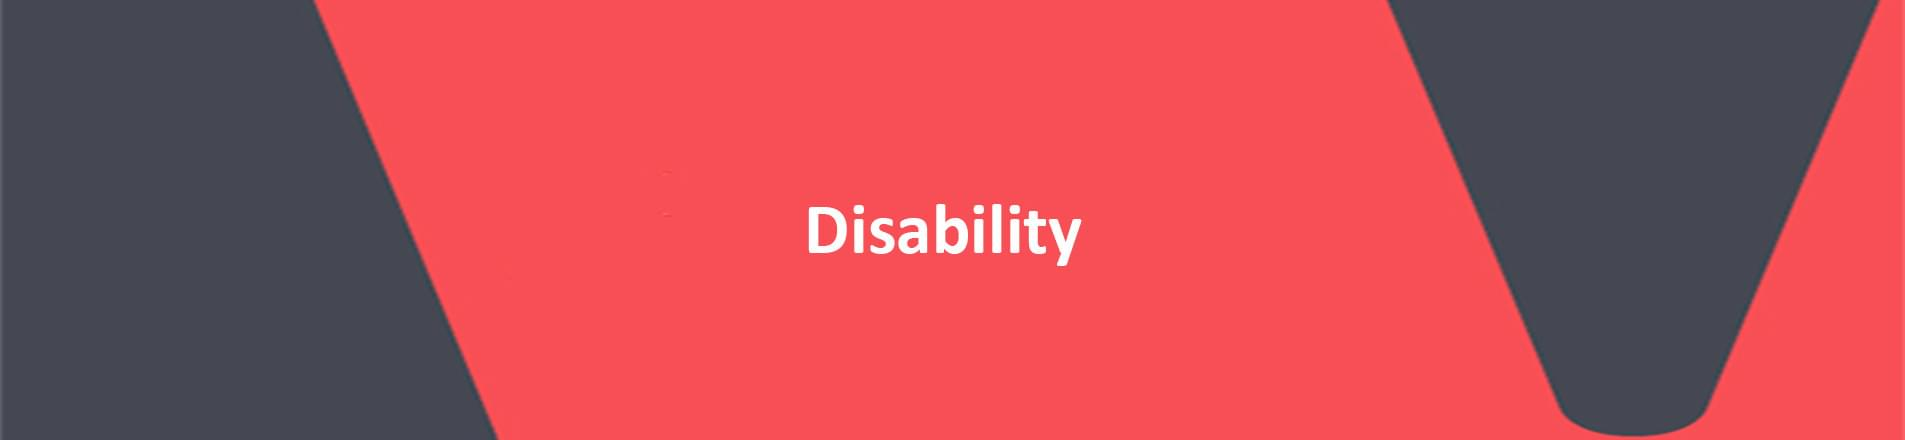 red banner with white text reading disability